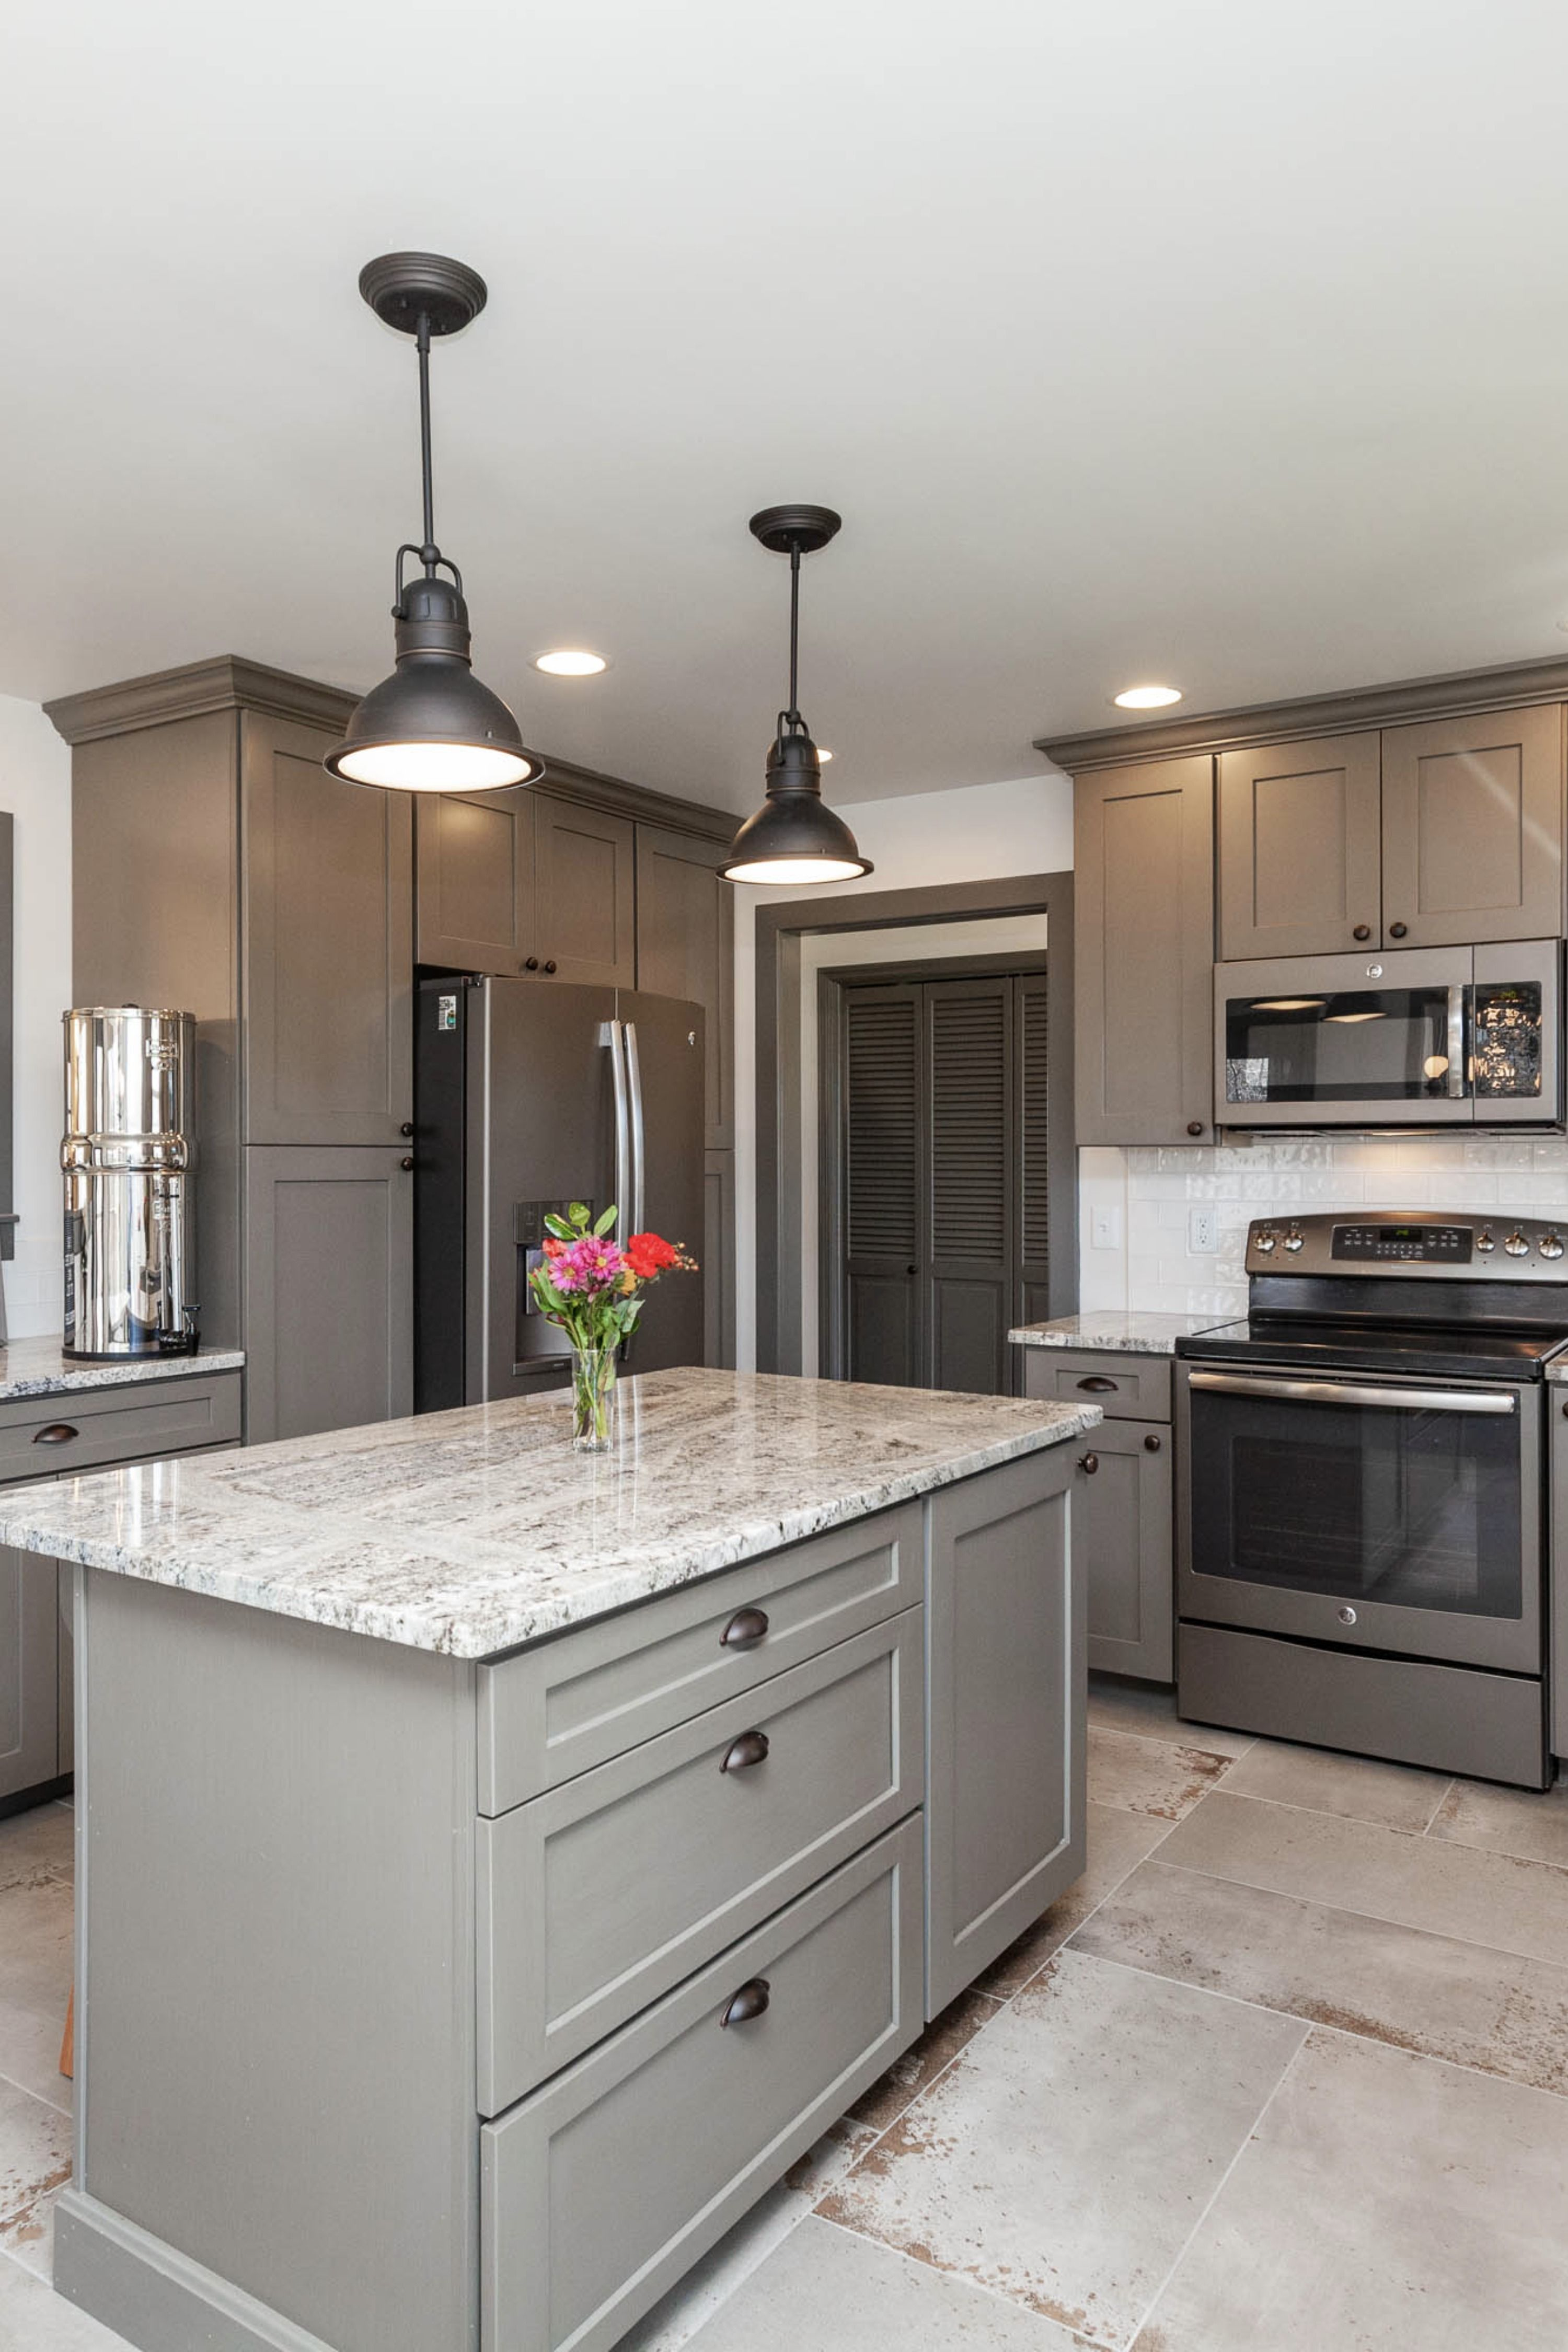 Our Shaker Creek Stone Brushed Brown Glaze Is A Subtle Way To Bring A Rustic Feel To A Kitchen A Kitchen Cabinet Styles Online Kitchen Cabinets Kitchen Design